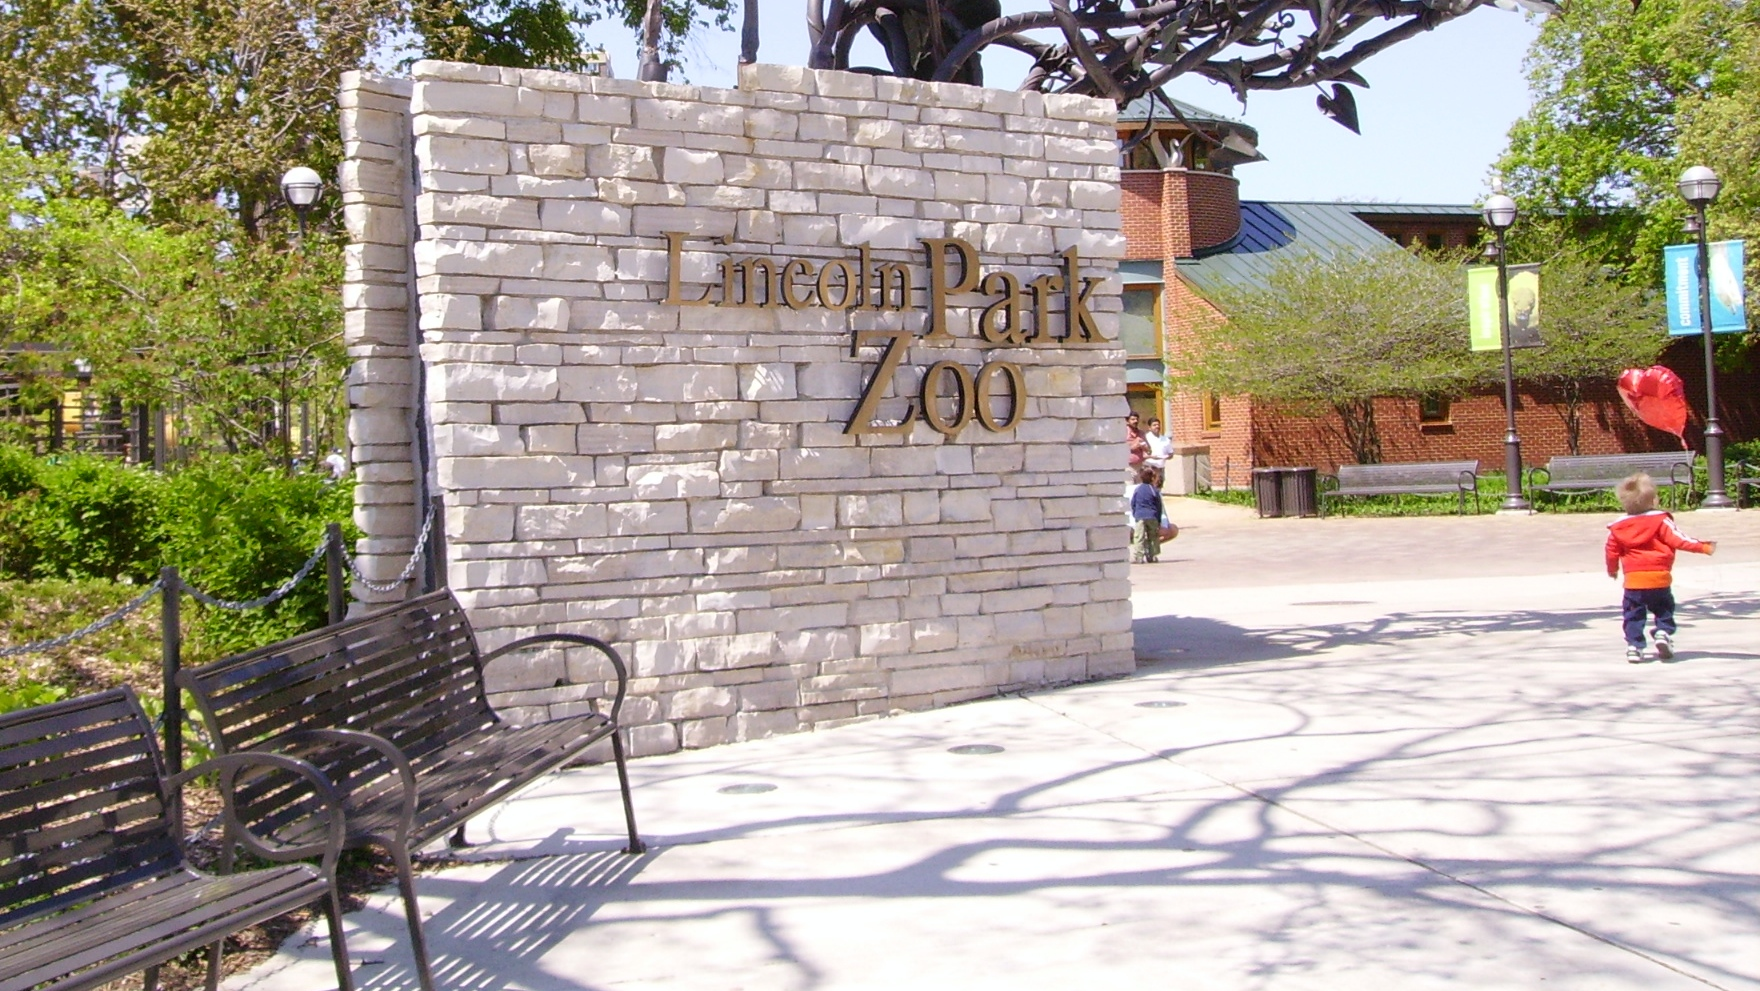 Lincoln Park Zoo's entrance